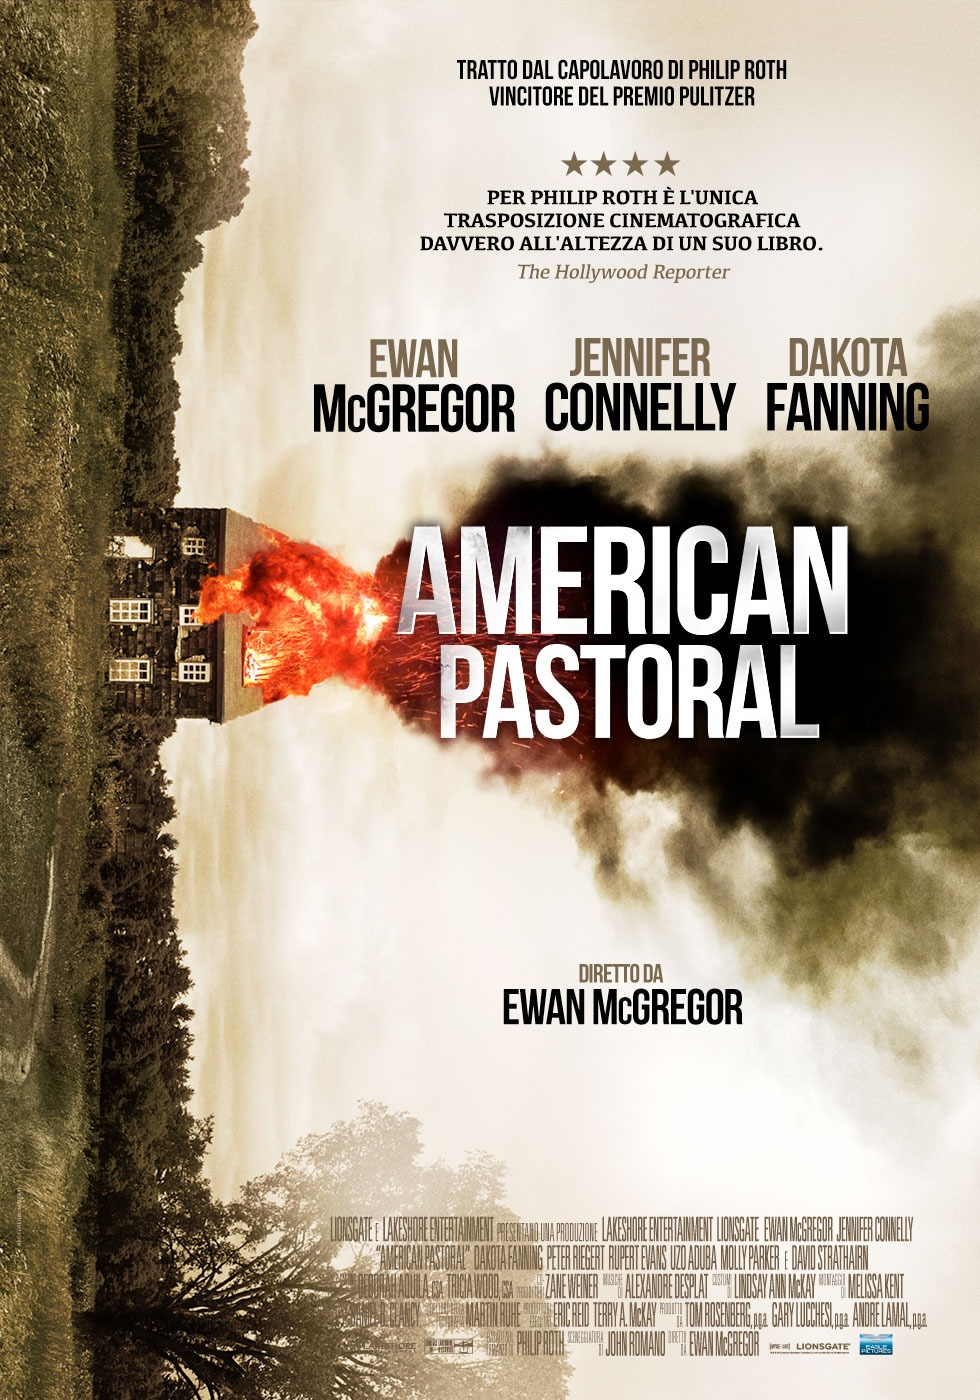 American Pastoral Movie : Teaser Trailer Dakota Fanning Married